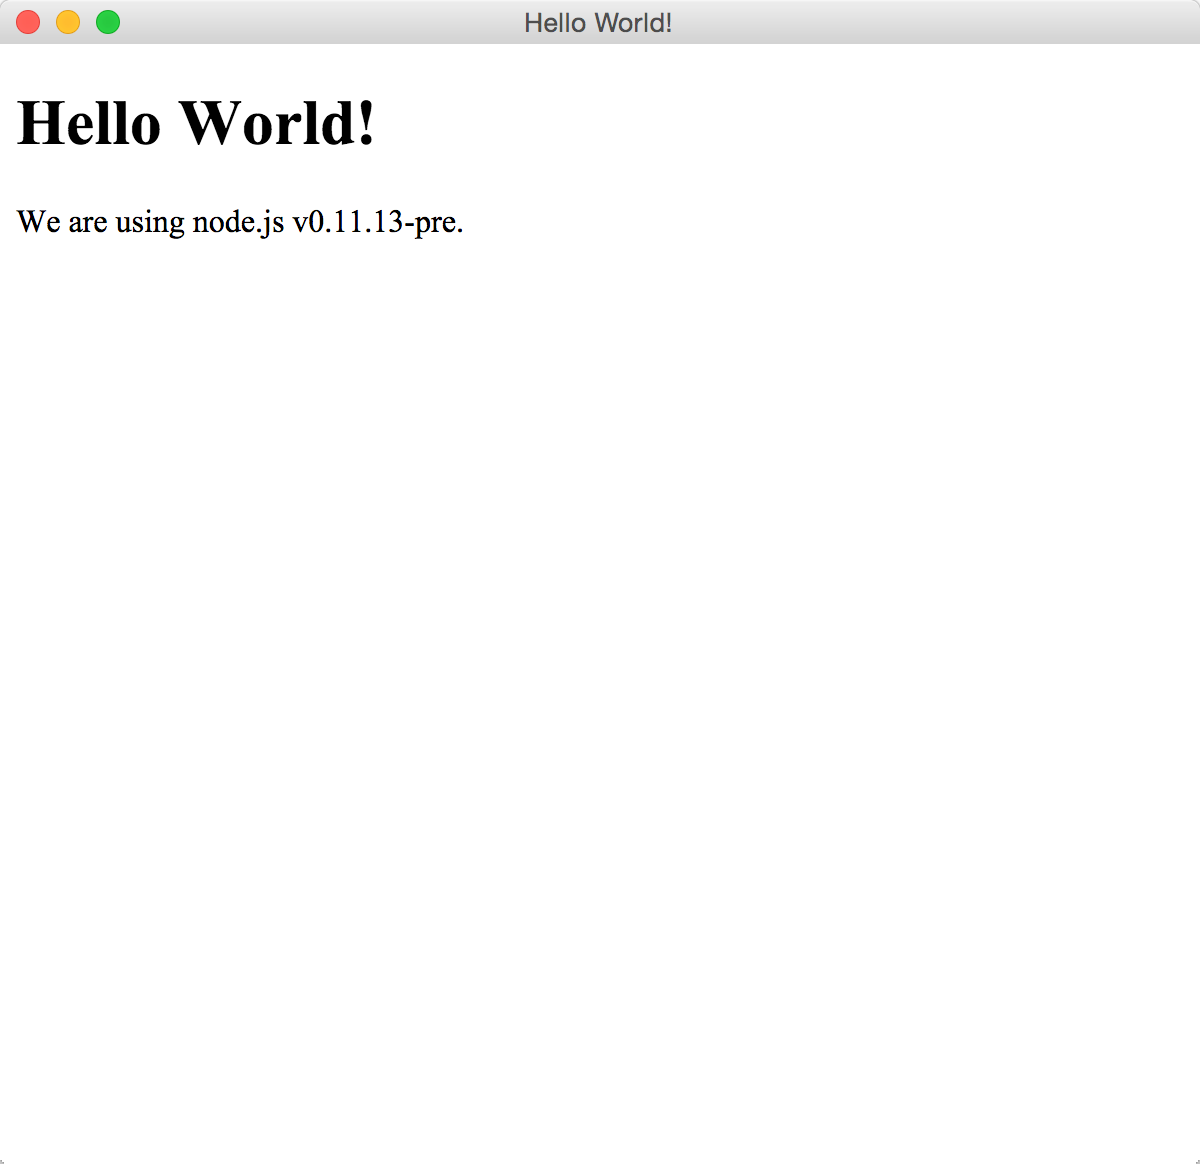 node-webkit の Hello World